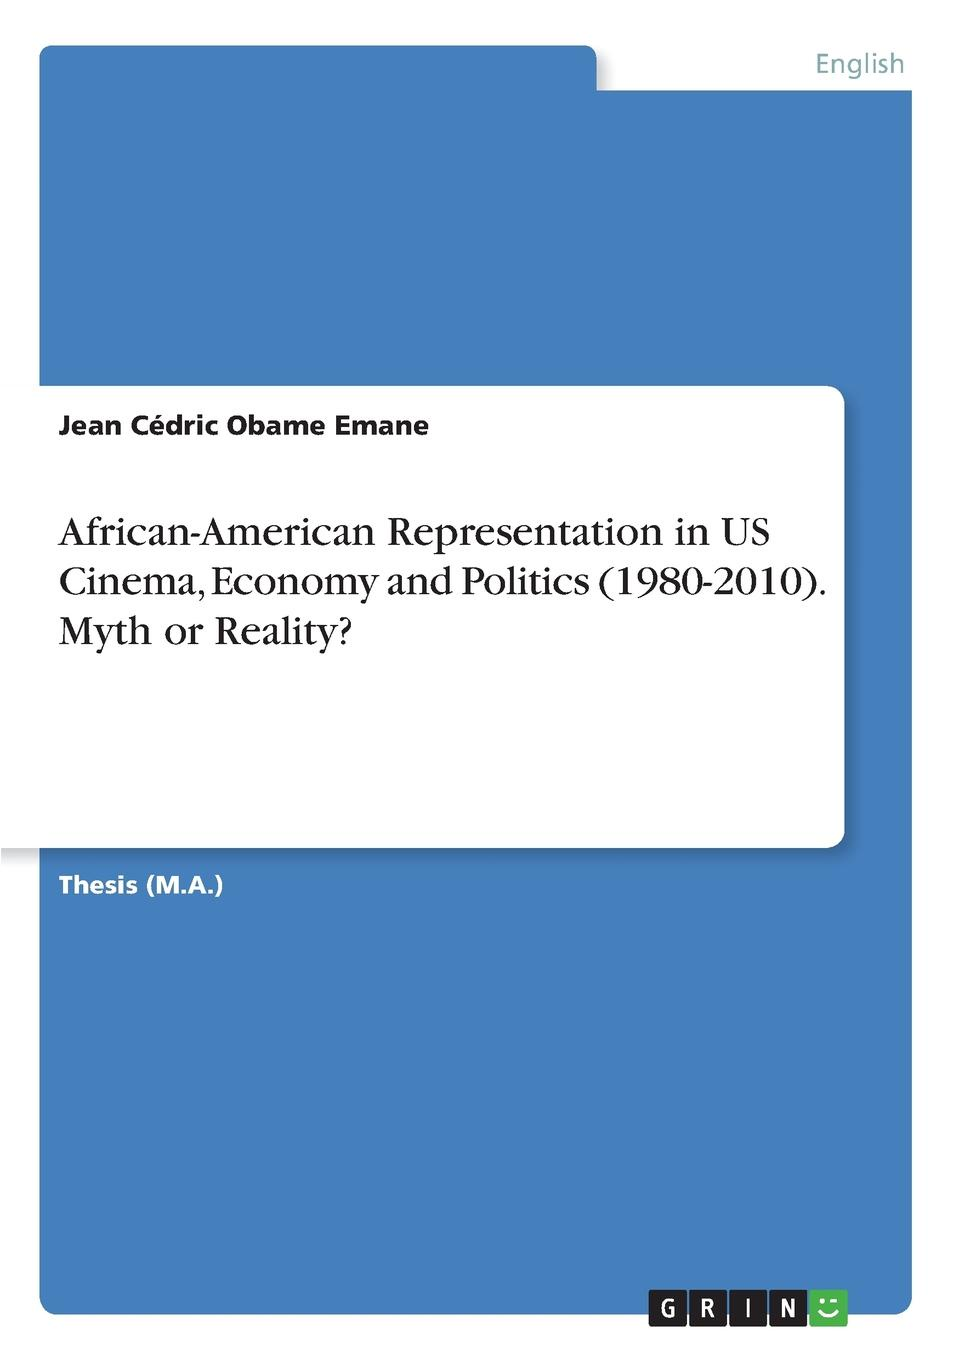 Jean Cédric Obame Emane African-American Representation in US Cinema, Economy and Politics (1980-2010). Myth or Reality. недорого